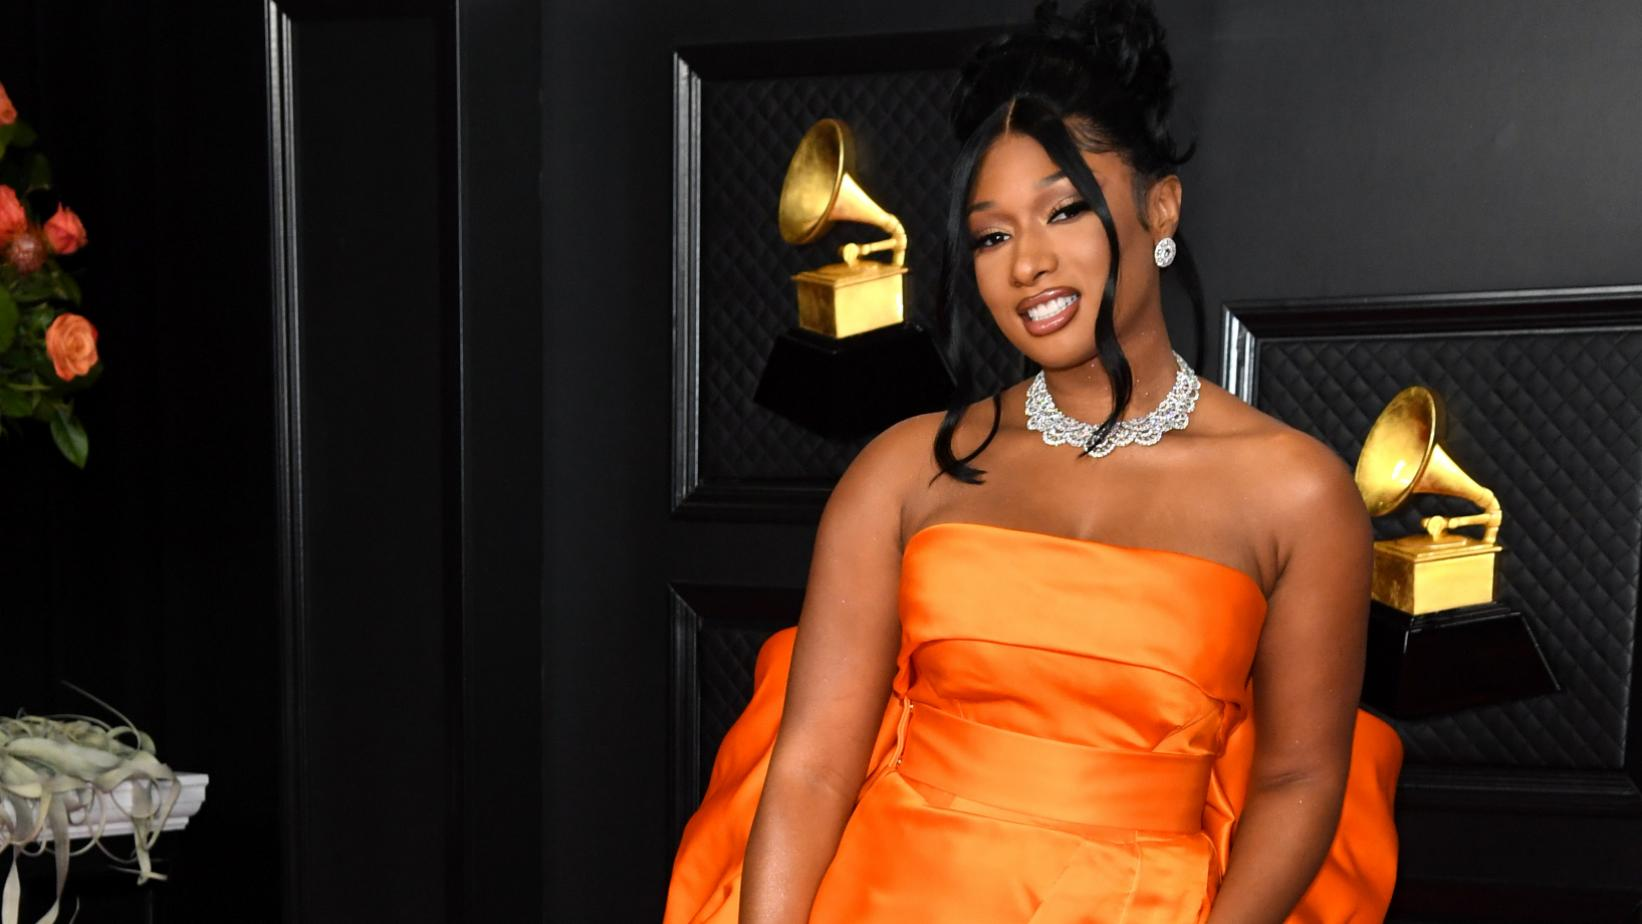 Photo of rapper Megan Thee Stallion posing on the 2021 GRAMMY Awards show red carpet